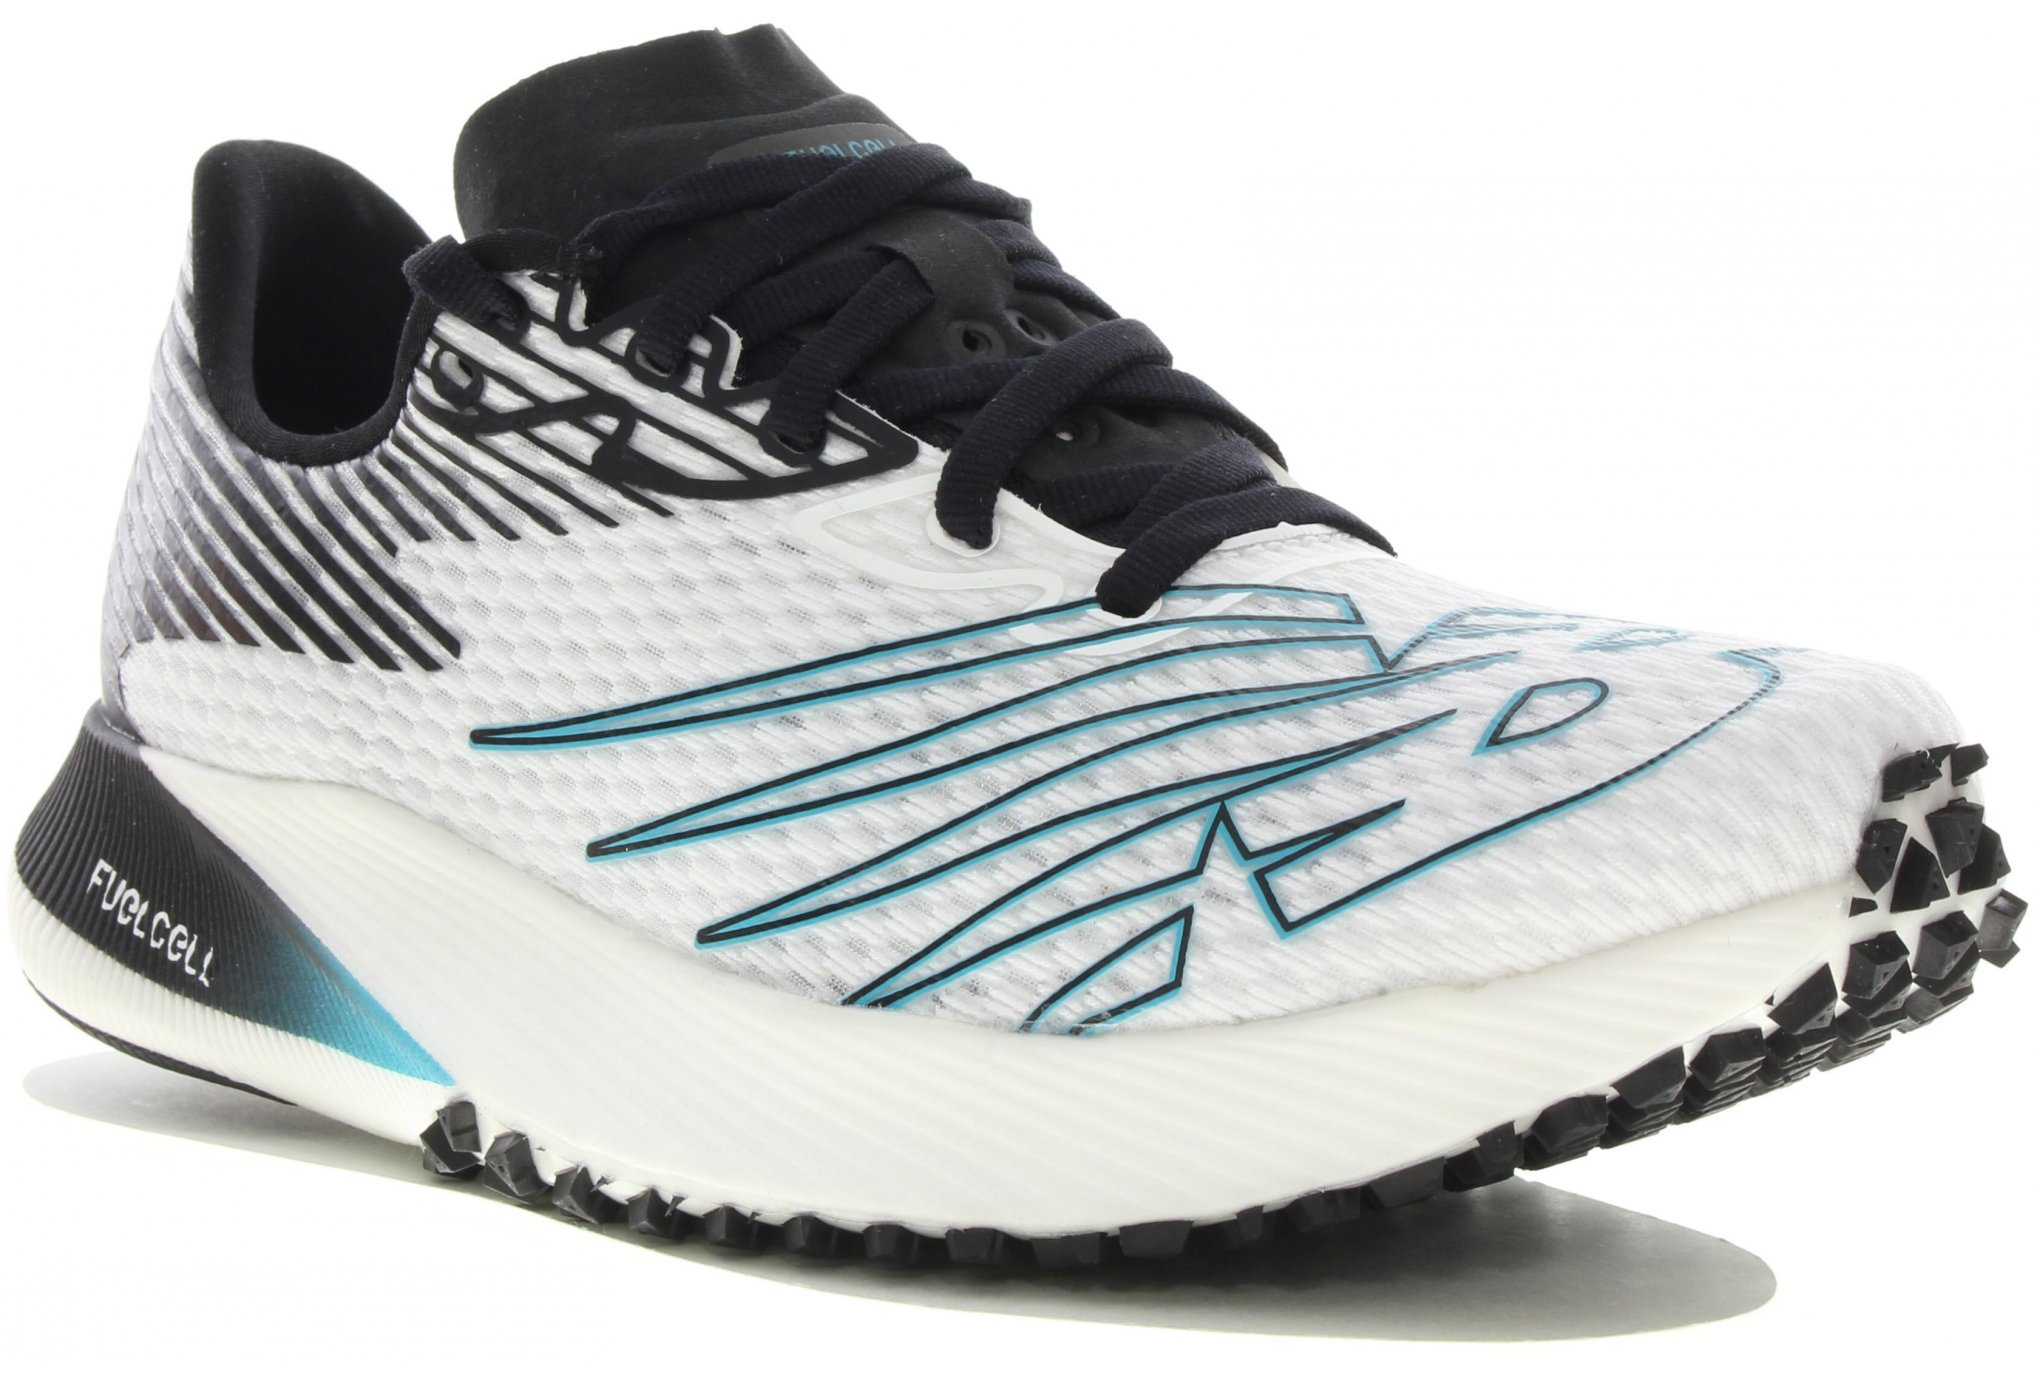 New Balance FuelCell RC Elite W Chaussures running femme